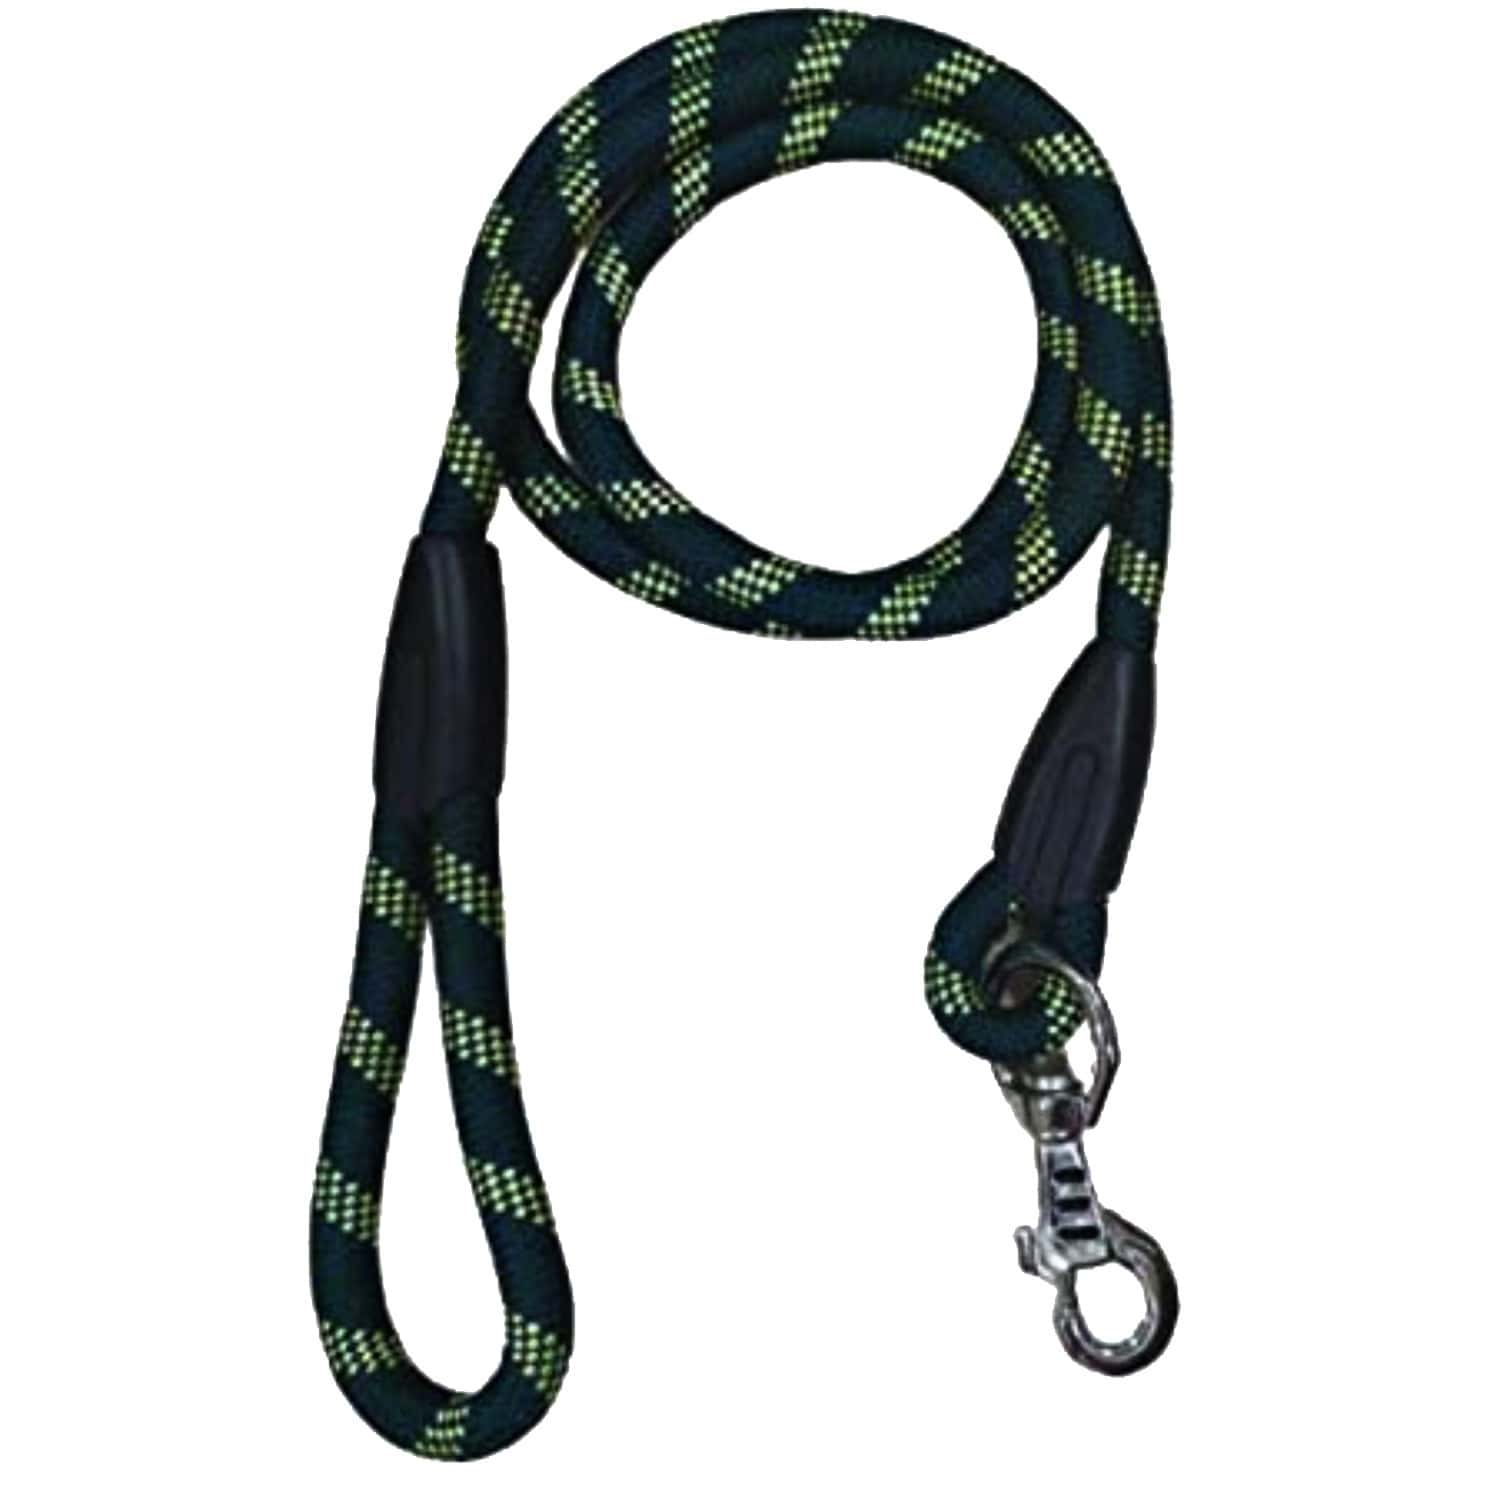 Pawcloud Dog Rope Leash, 6 Ft, Extra Large, Green - 72 Inch, For Large & Giant Dogs